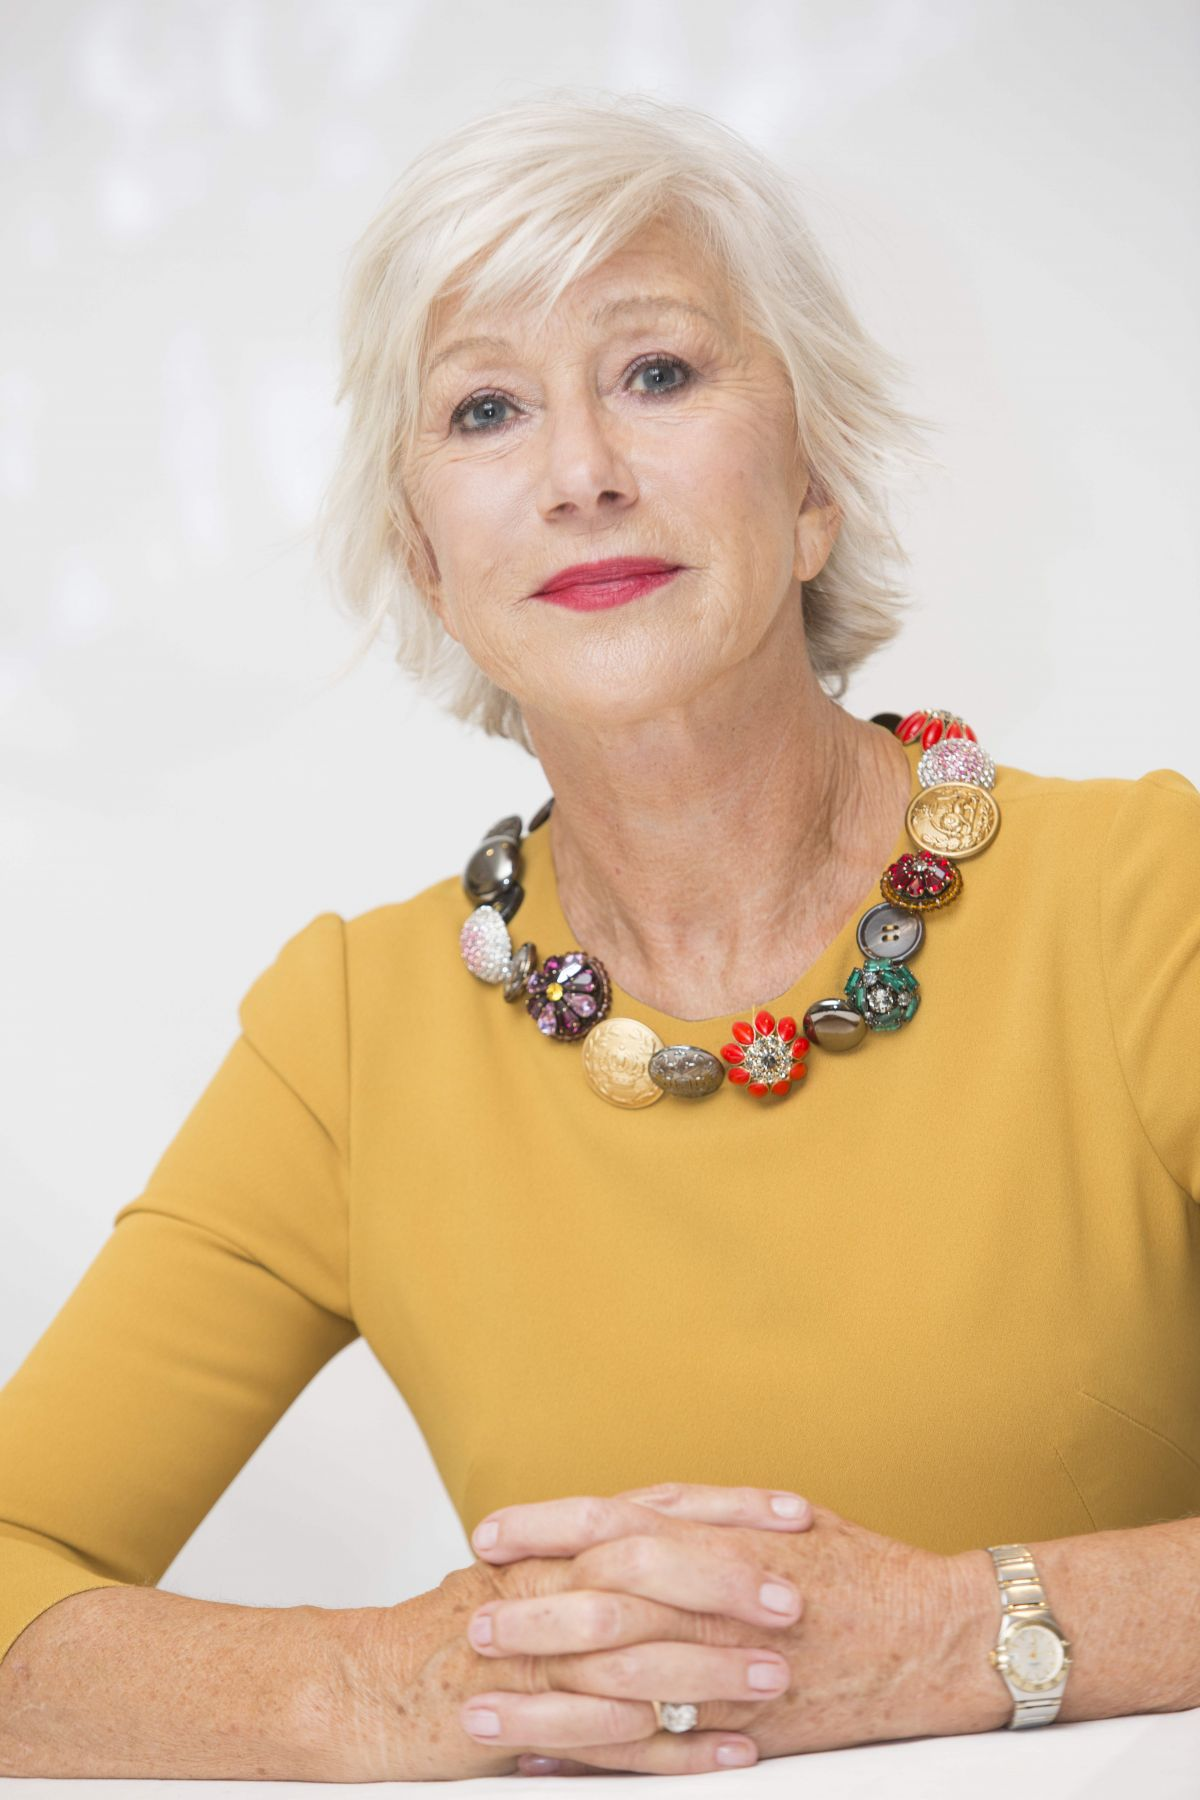 Helen Mirren Attends a Press Conference at TIFF - Toronto ...